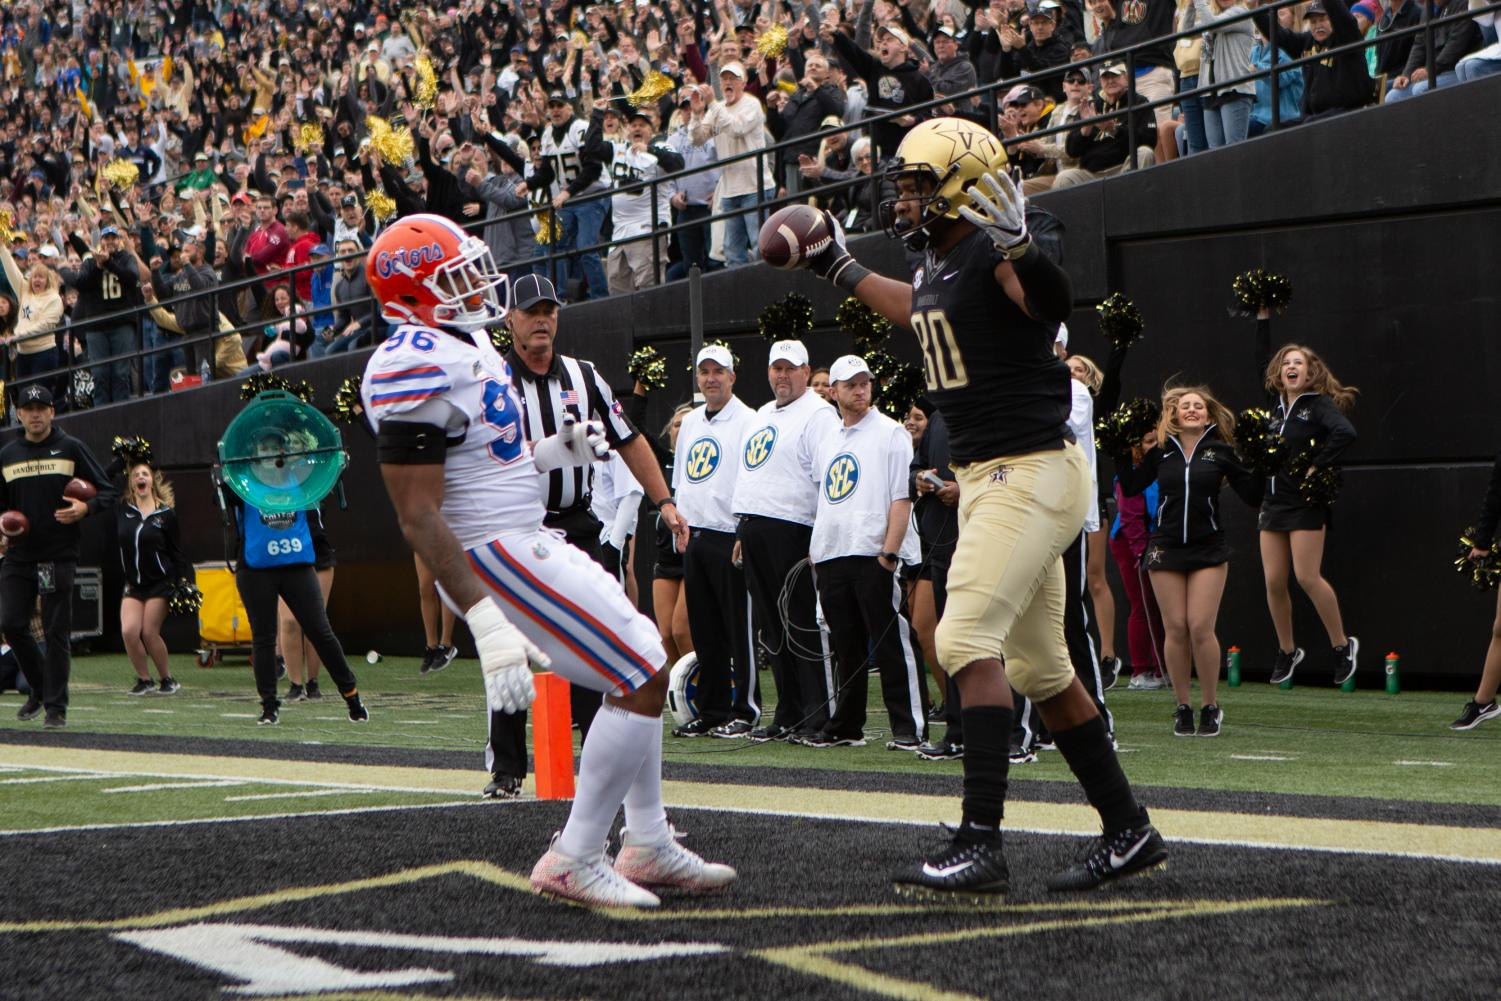 Vanderbilt hosts Florida on October 13, 2018.